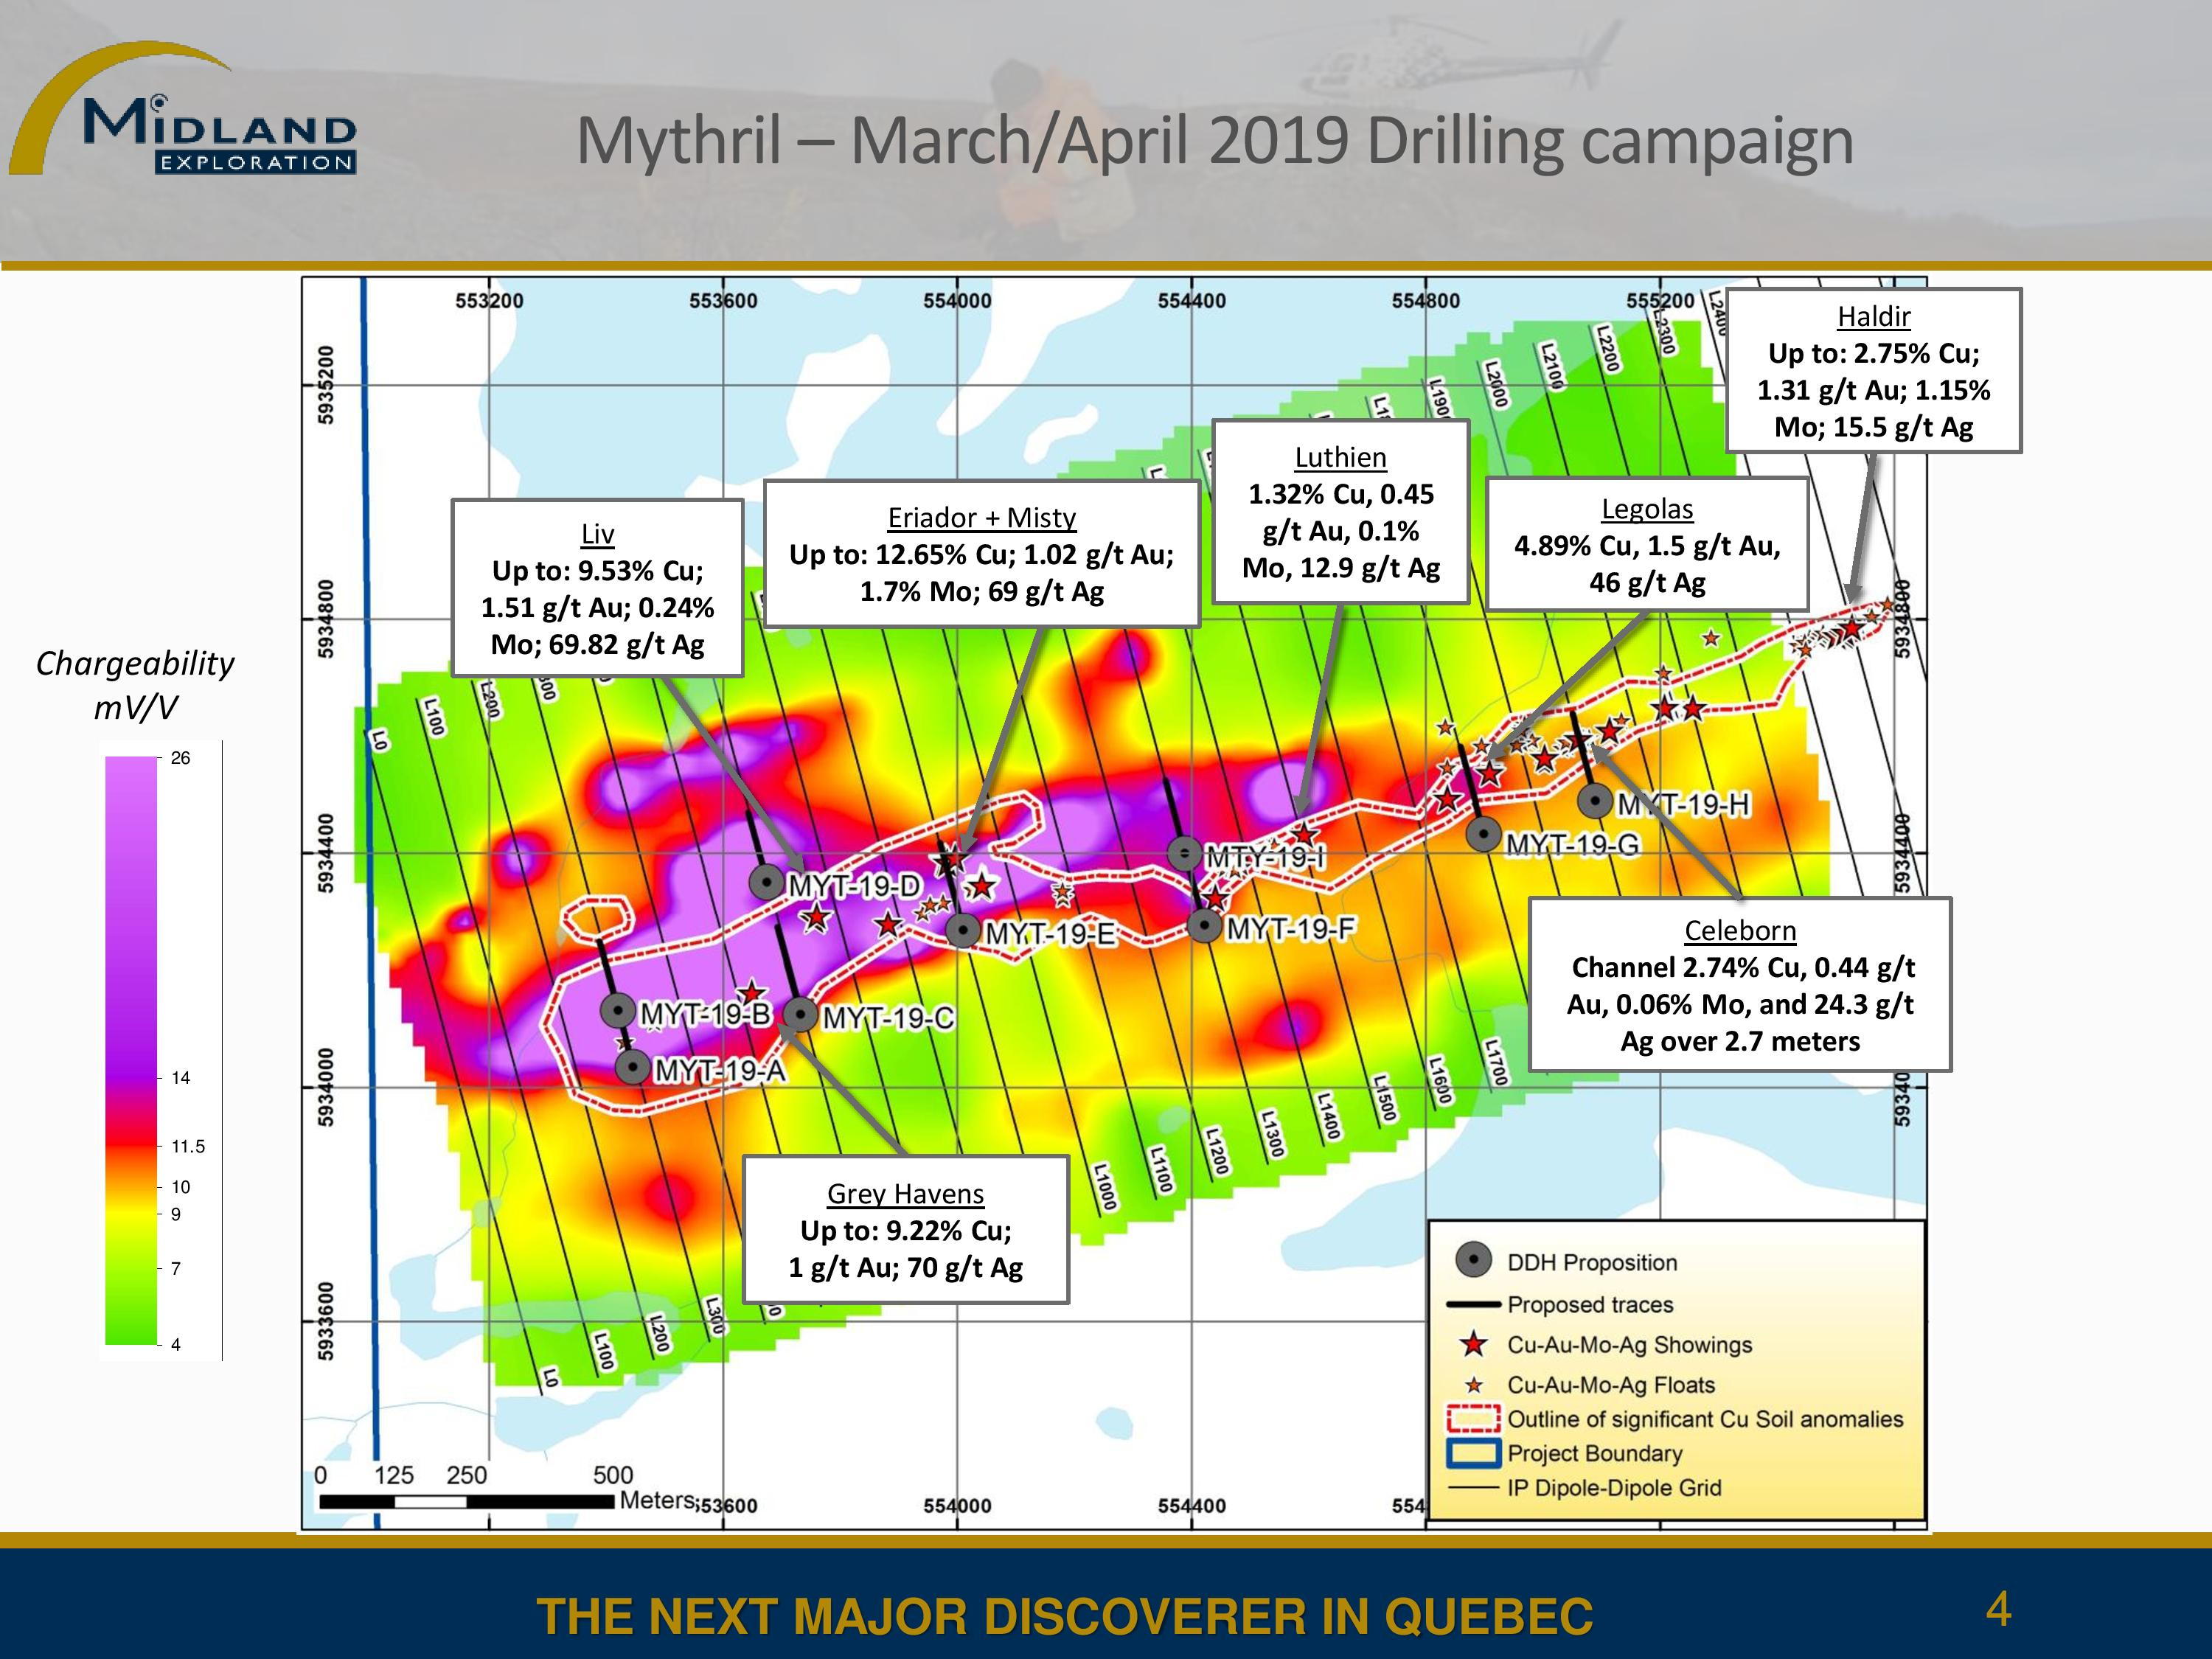 Mythril - March/April 2019 Drilling campaign